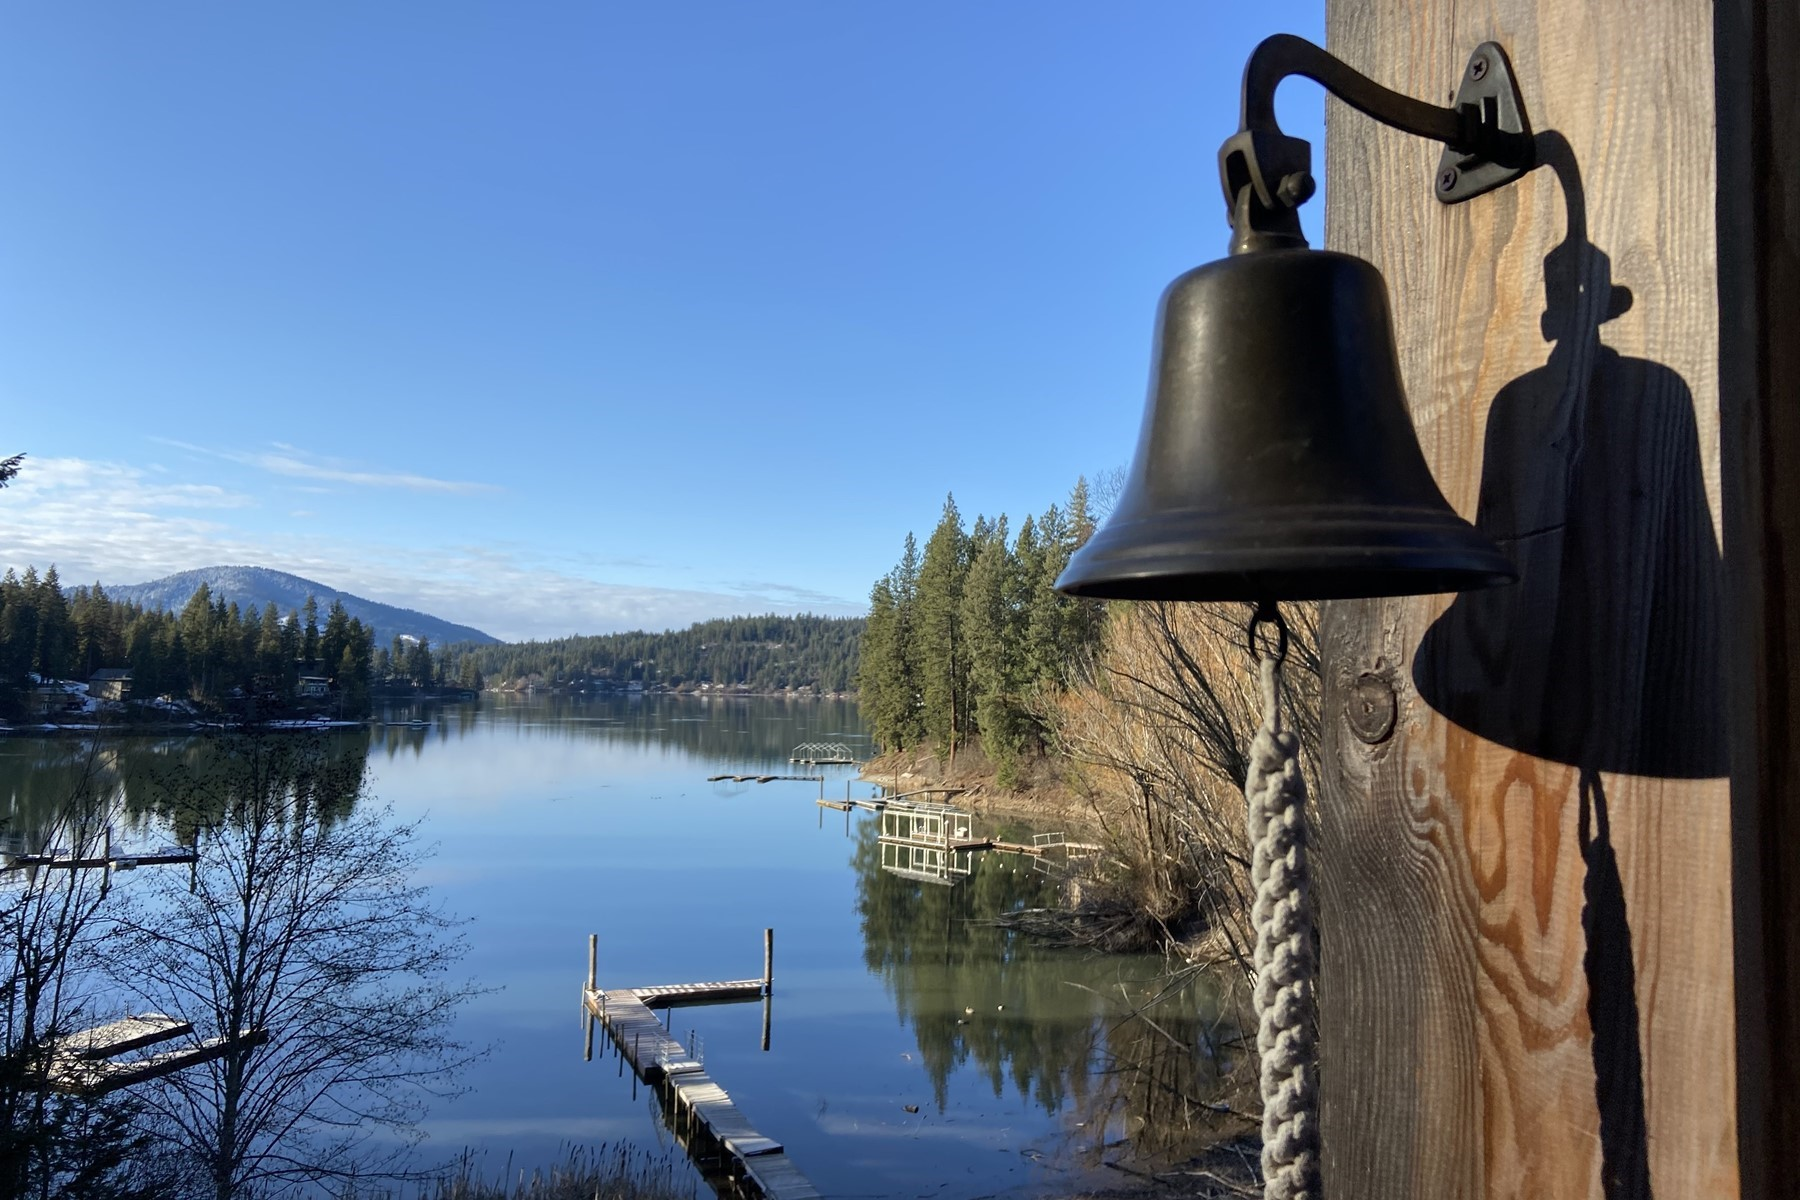 Single Family Homes for Active at Hayden Lake Waterfront Acreage Lodge 31245 E Hayden Lake Rd Hayden, Idaho 83835 United States